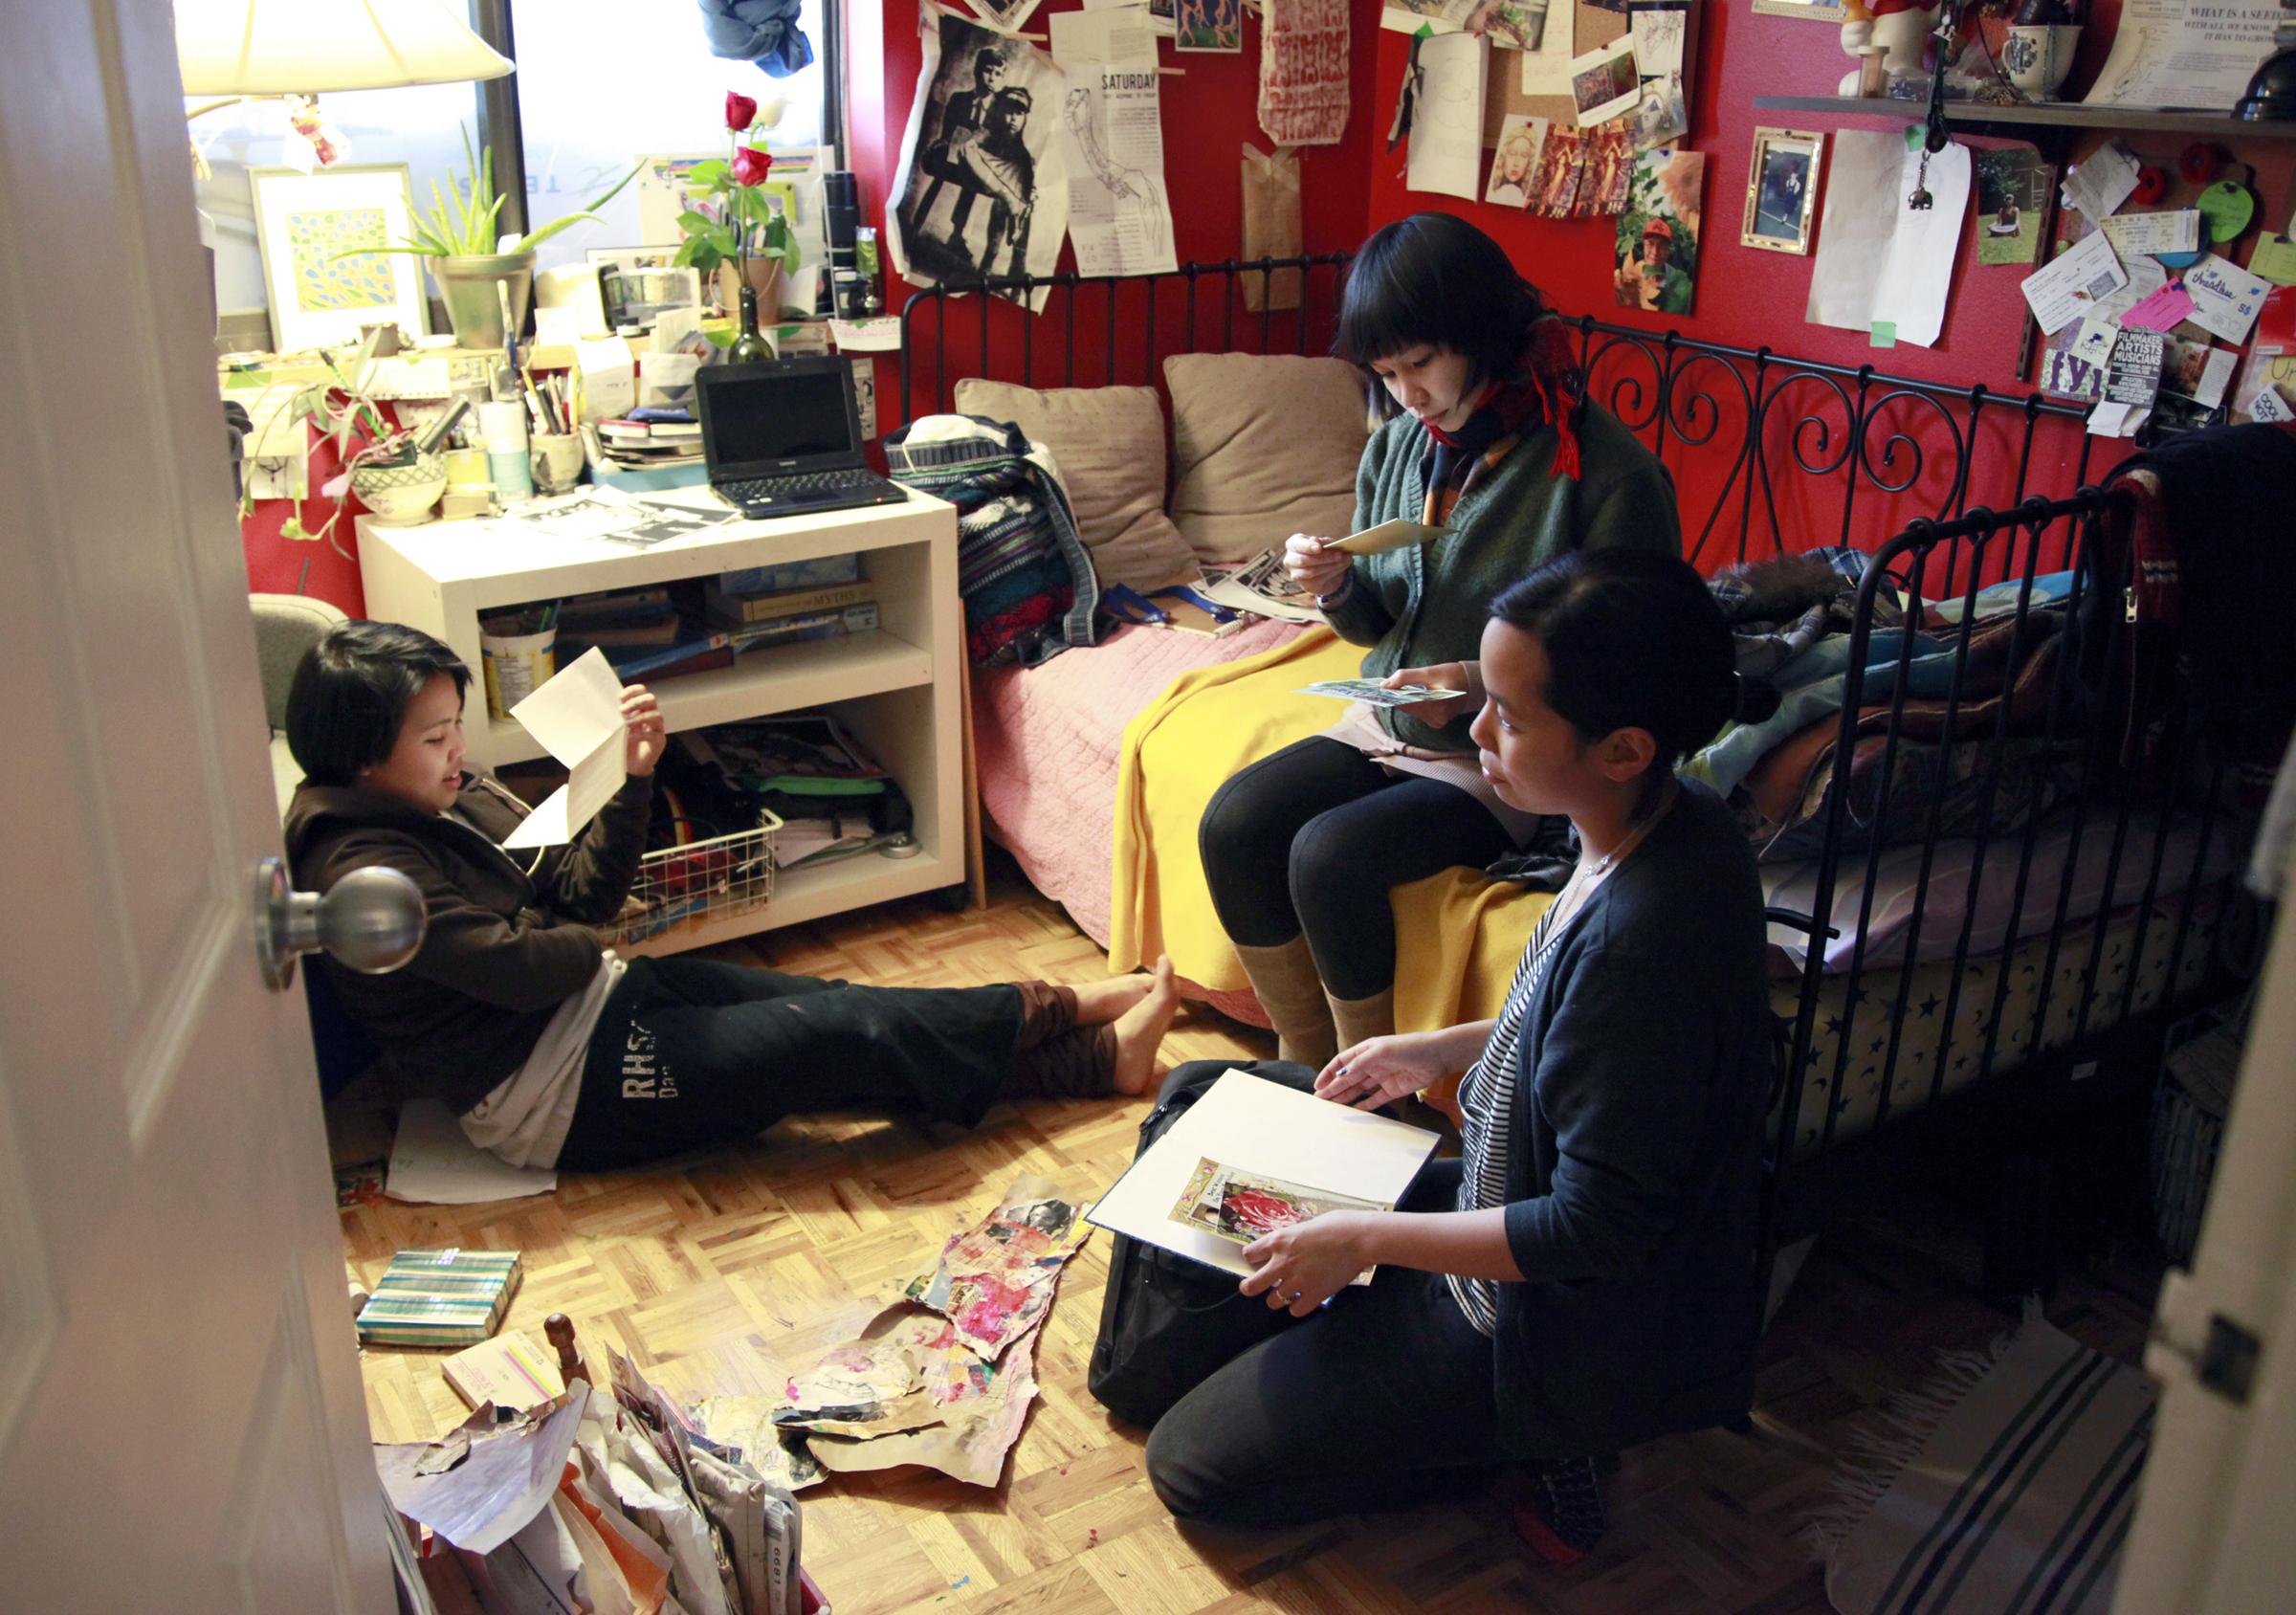 The CLUTCH girls hanging out with Casey their coordinator, in a bedroom with all their artwork laid out on the floor